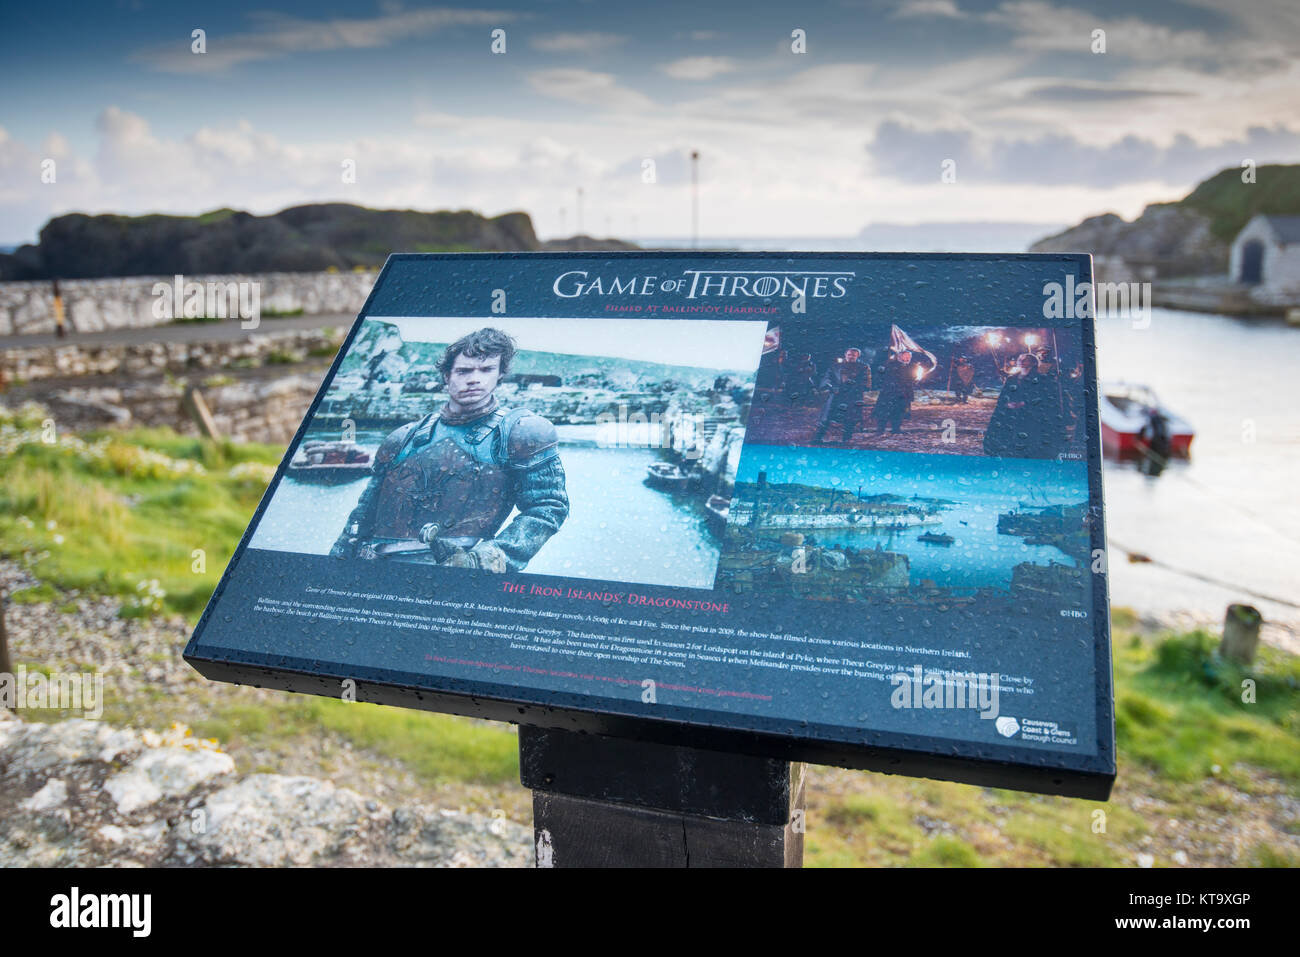 Visitor information board at Ballintoy Harbour in County Antrim, Northern Ireland, which was used as a location - Stock Image